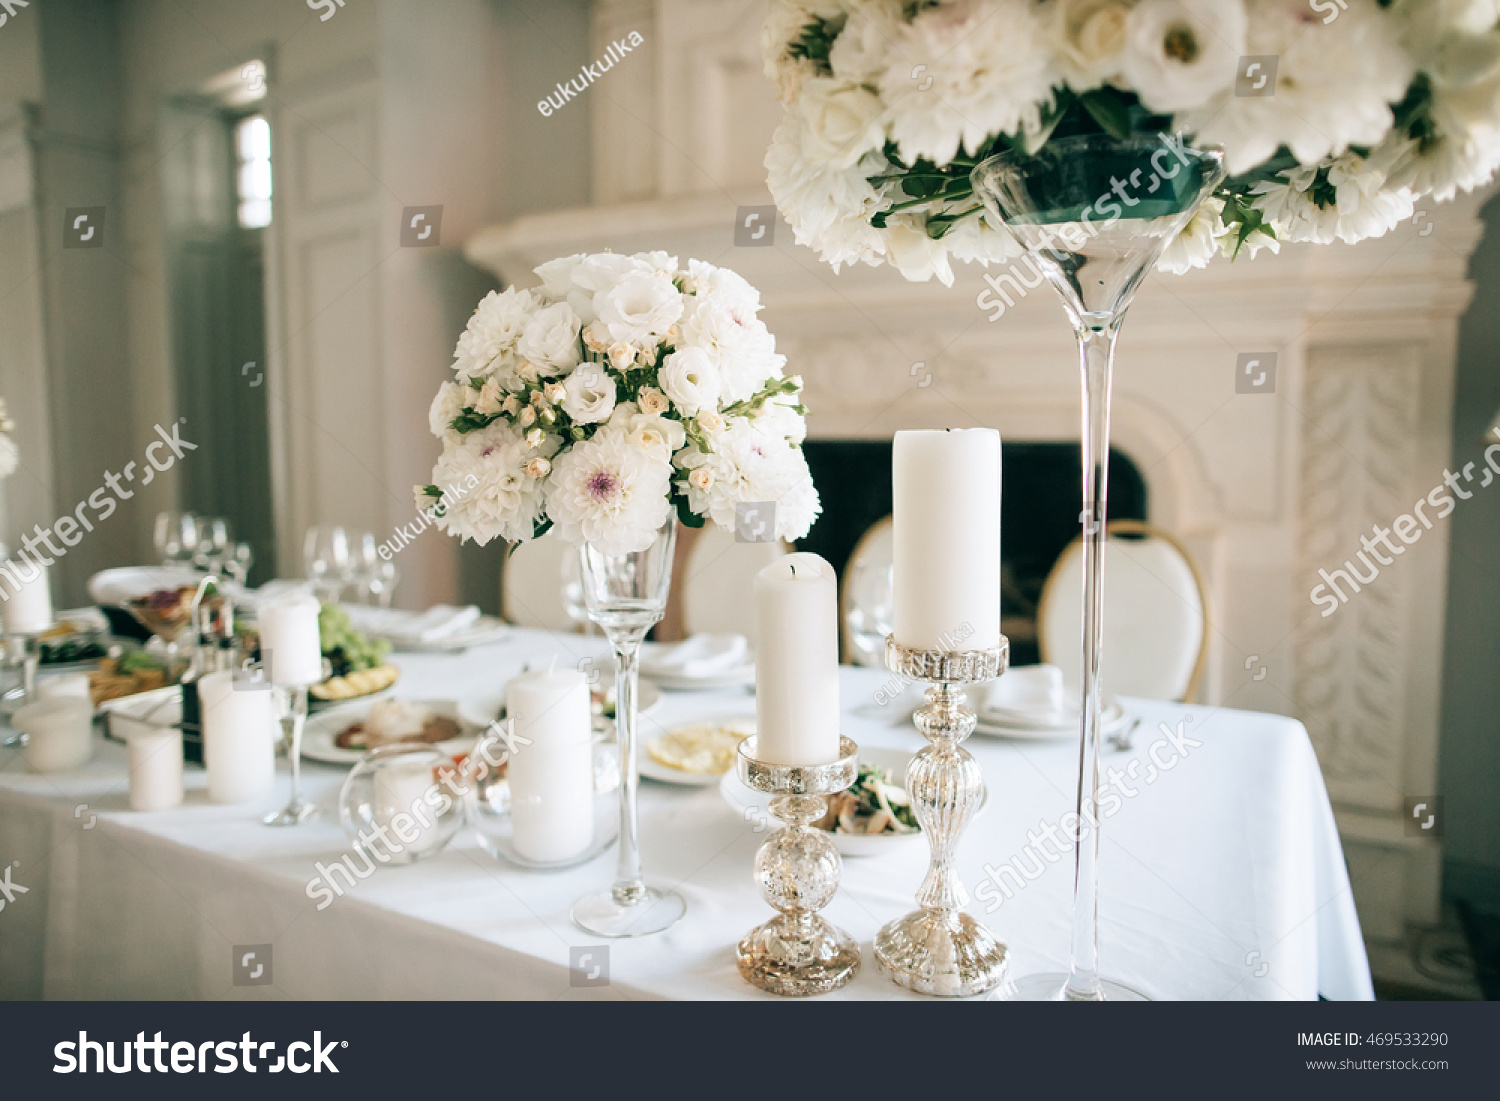 Table Decor White Flowers Candles Event Stock Photo Edit Now